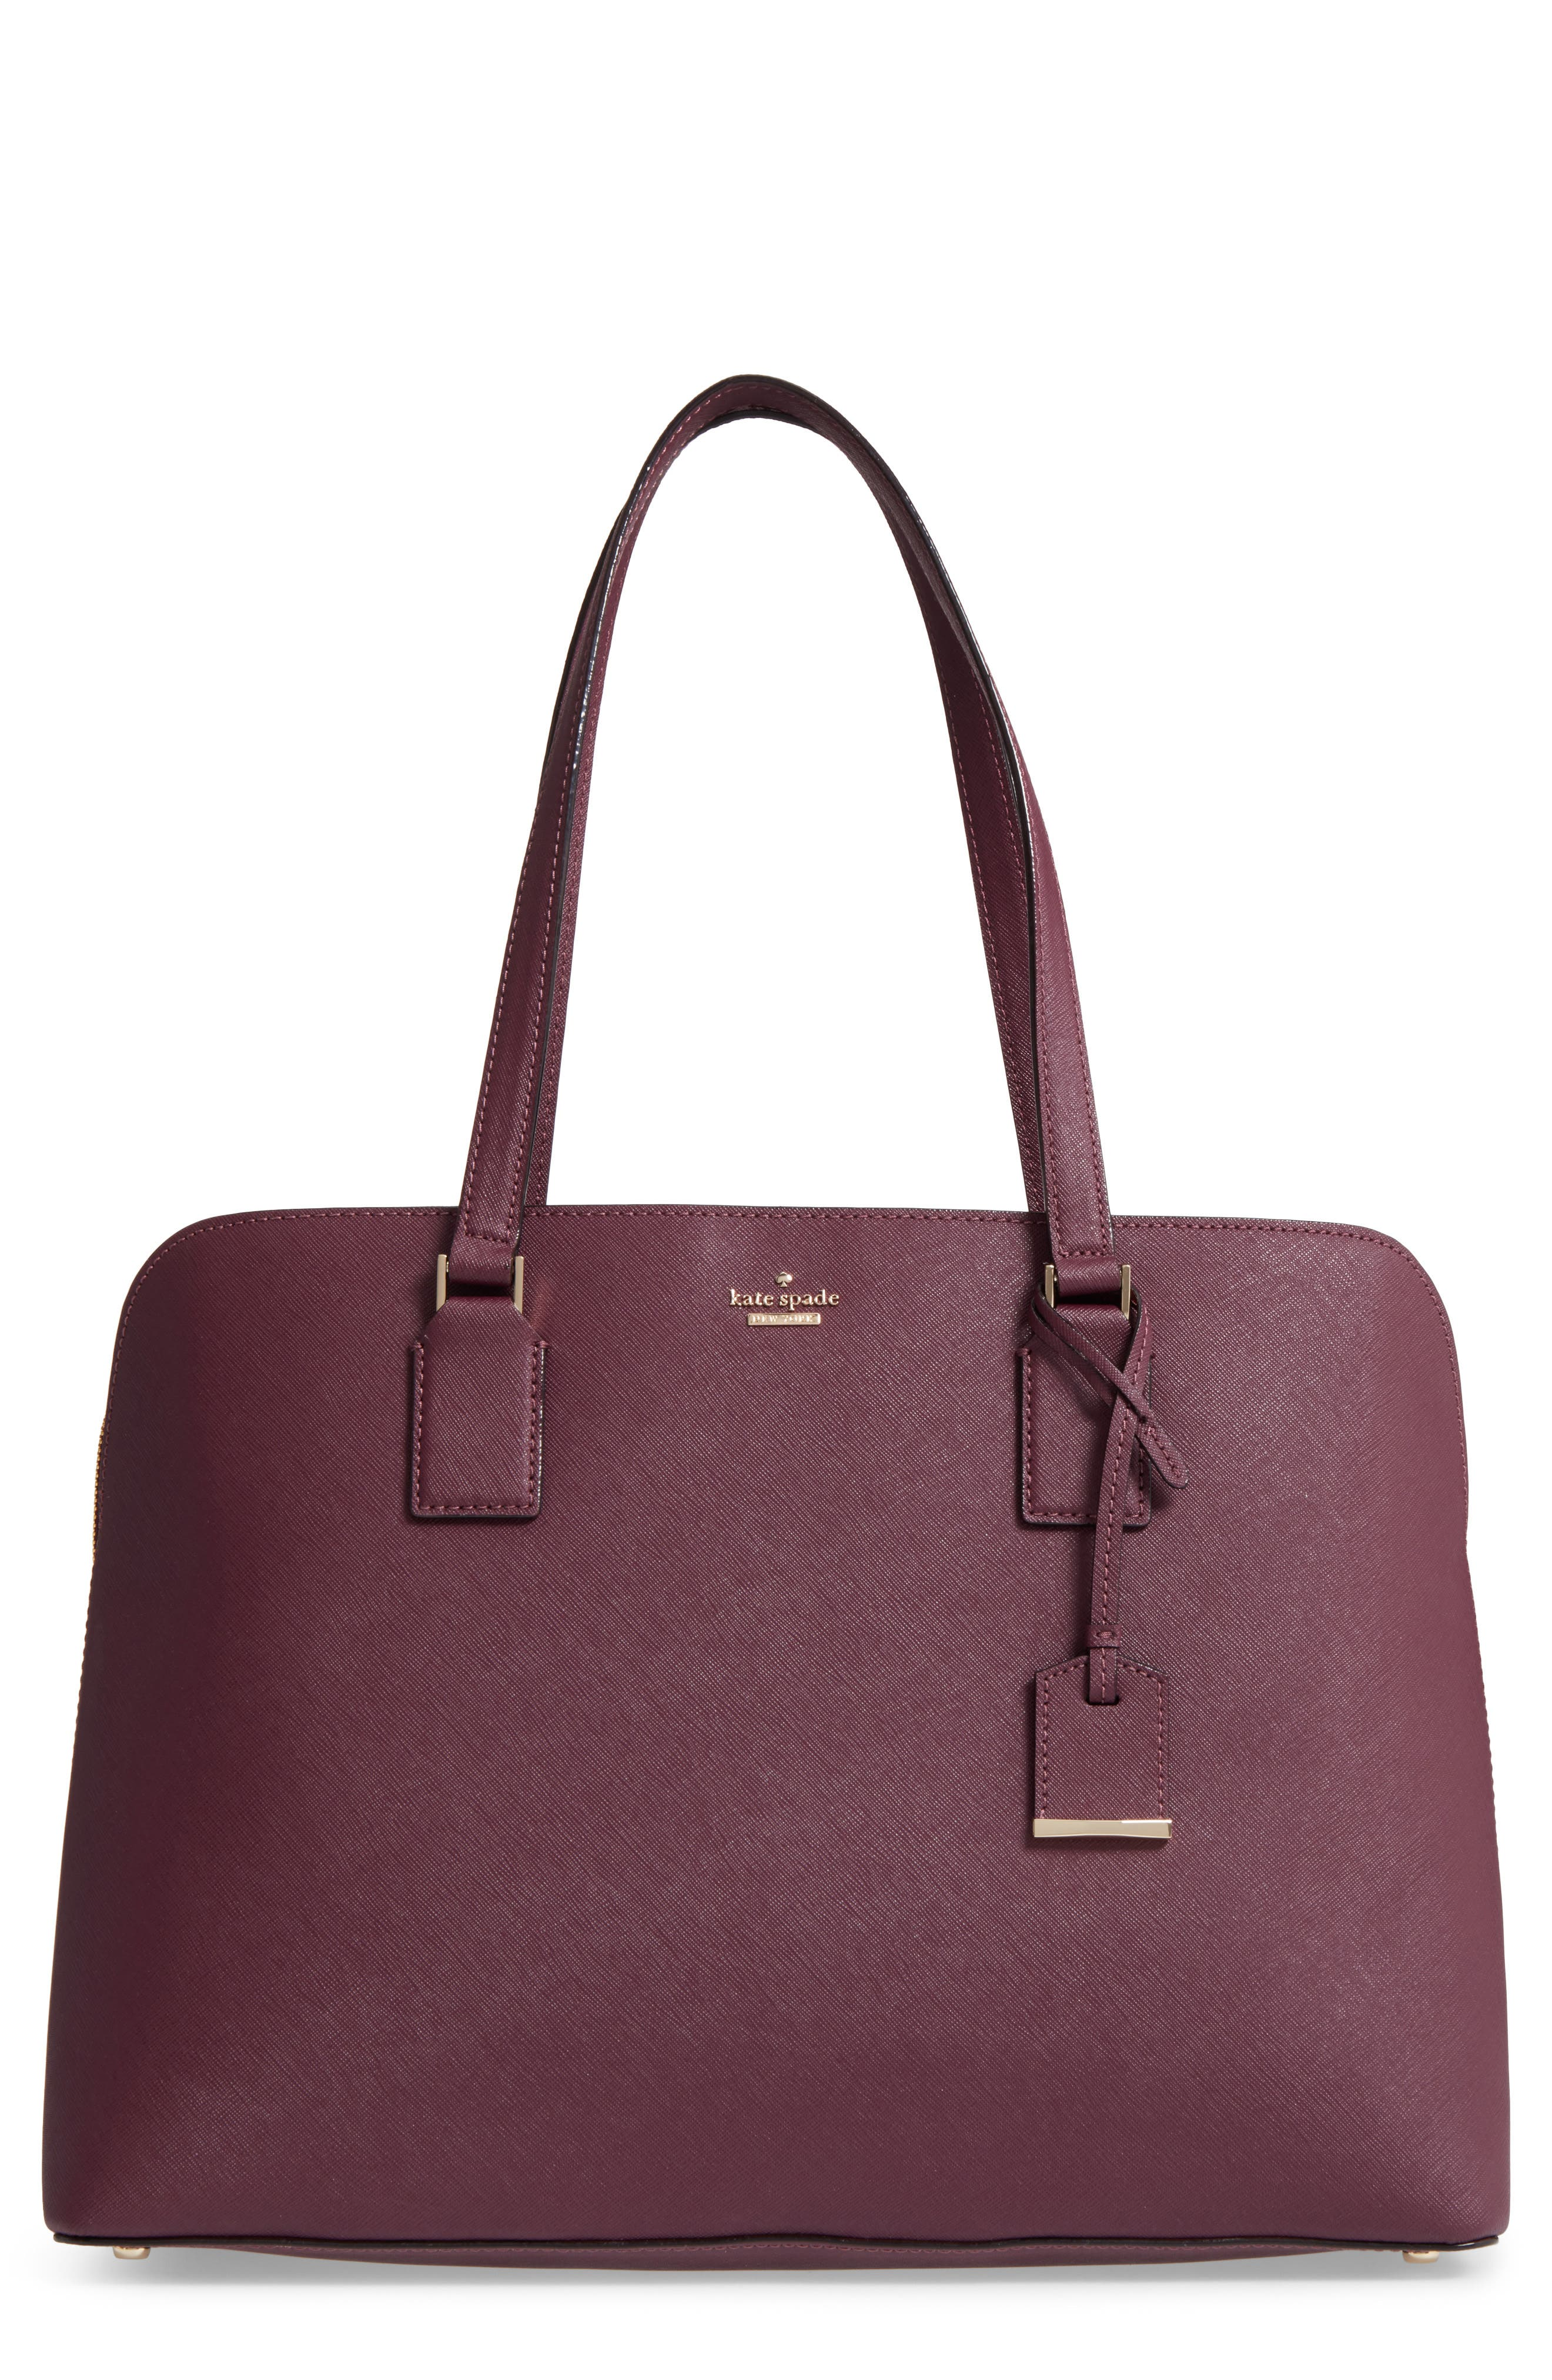 cameron street - marybeth leather tote,                         Main,                         color, 513